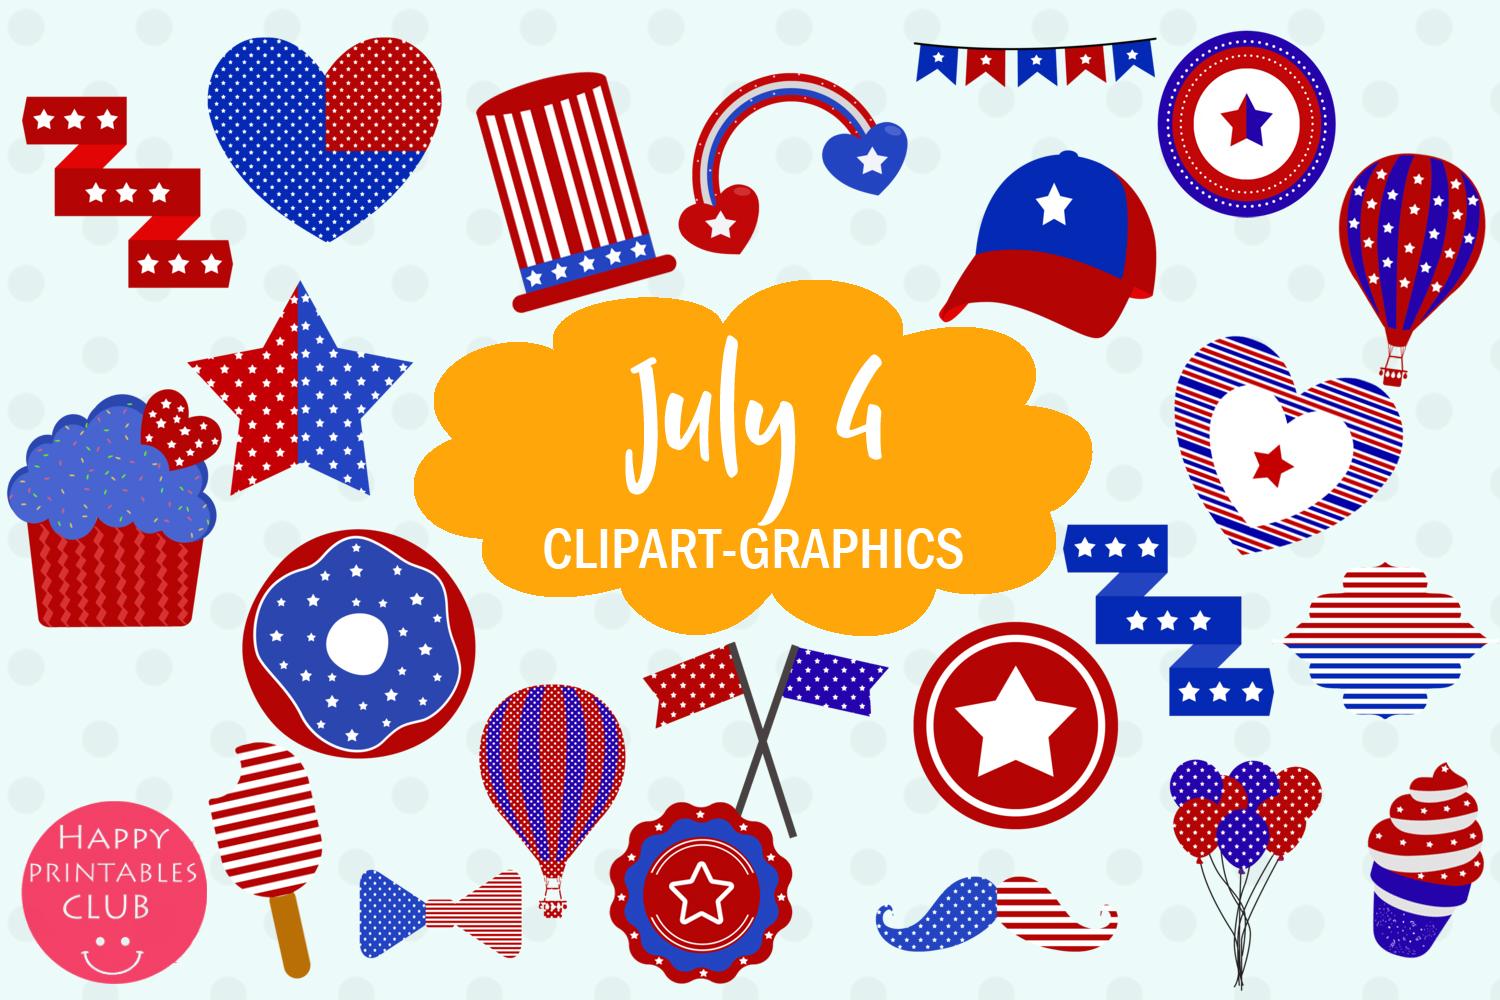 July 4 clipart graphic free download 40 July 4 Clipart Graphics-Patriotic Clipart-4 July Clipart graphic free download